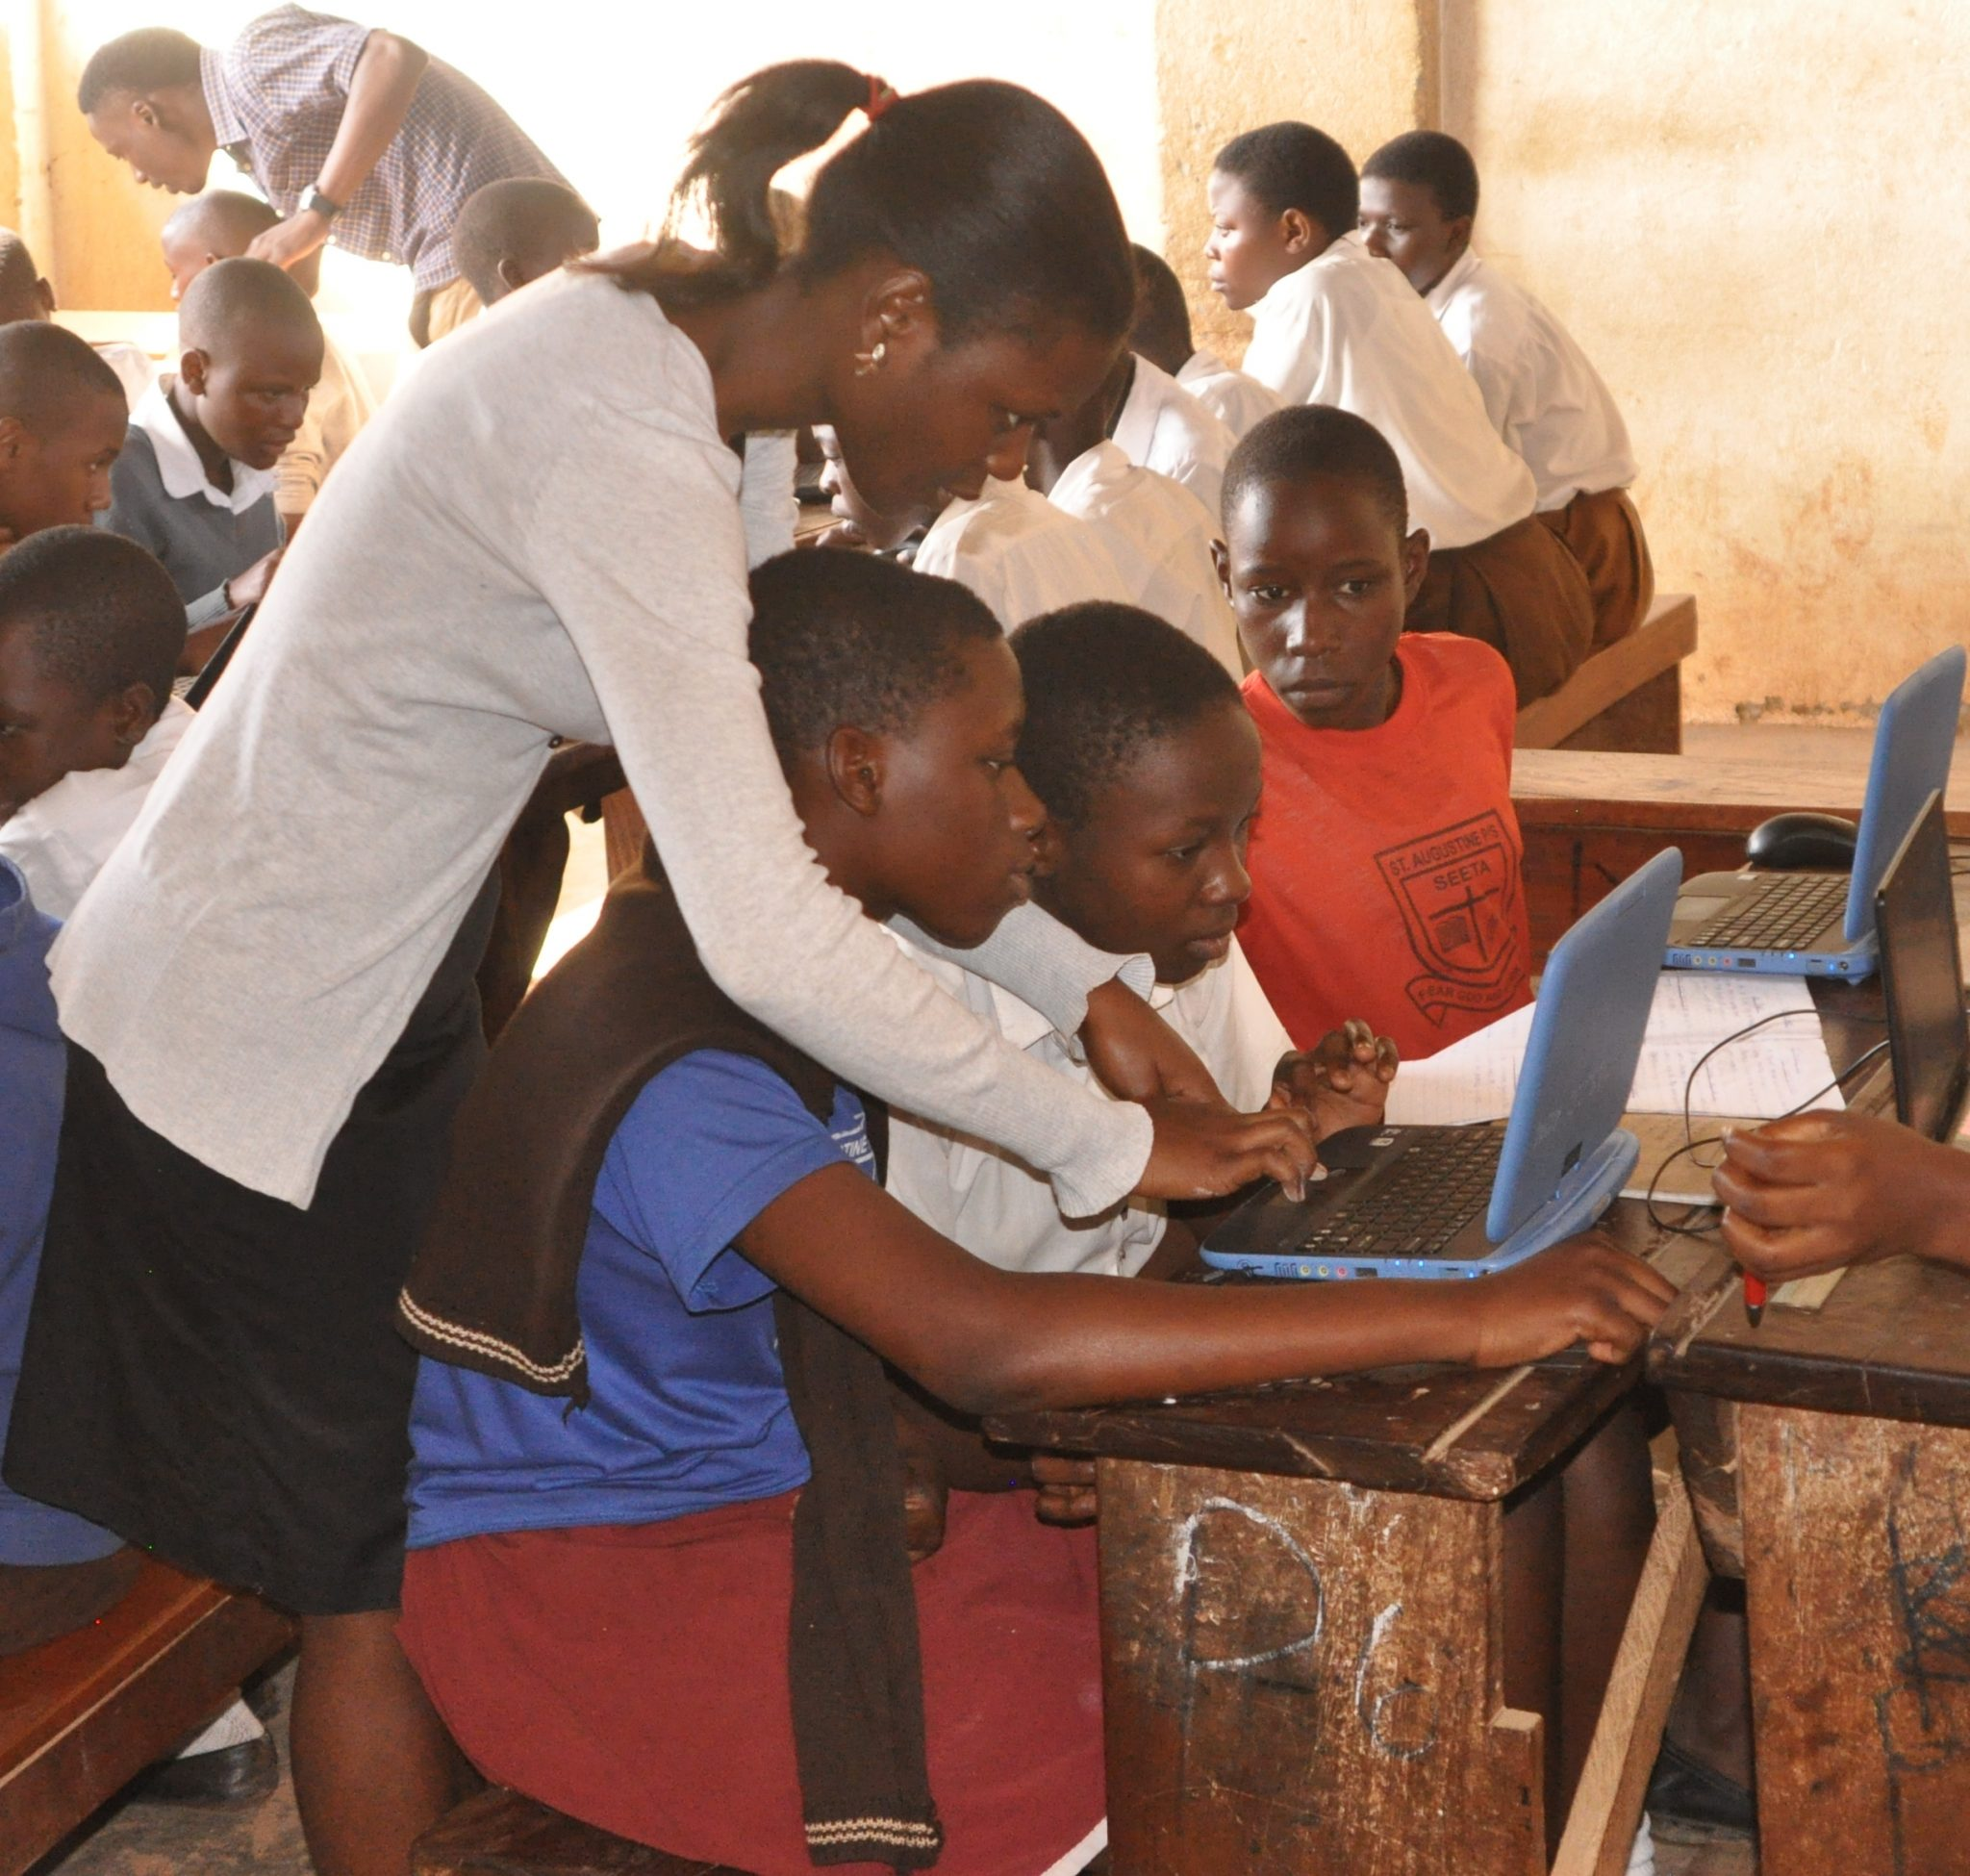 Veronica's passion to empower girls and women with ICT skills